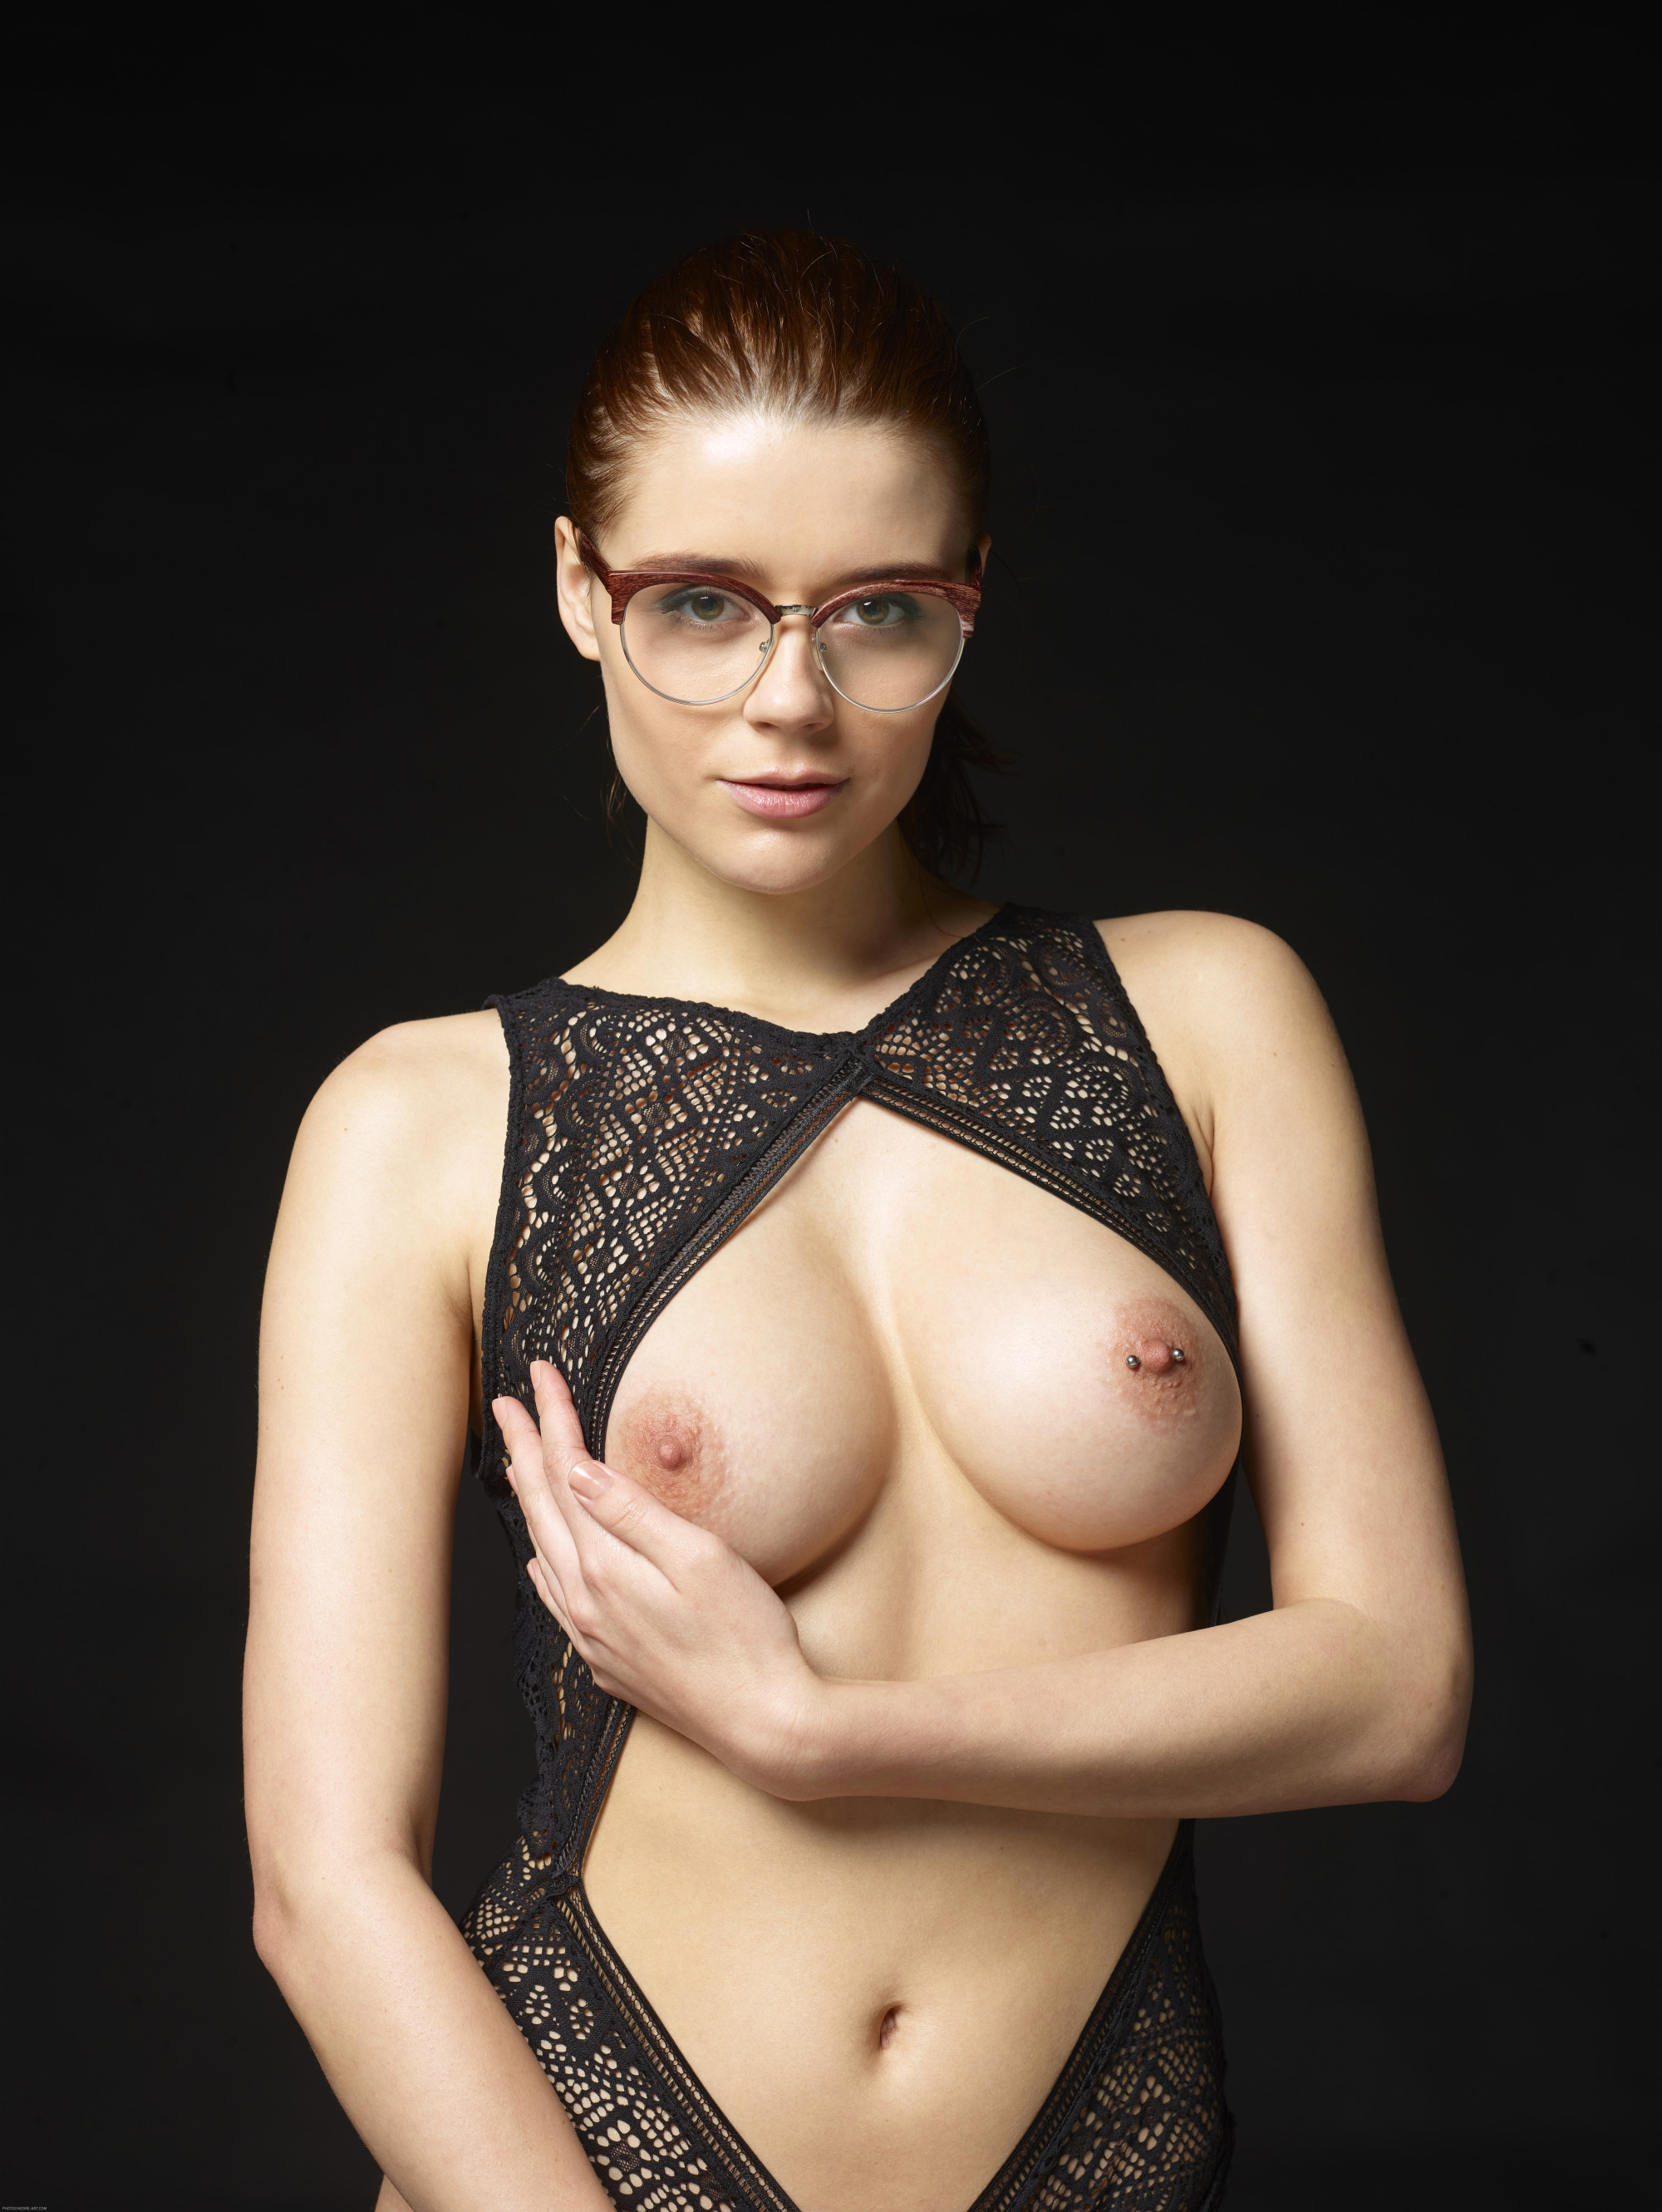 nude-girls-in-glasses-boobs-mix-vol2-10